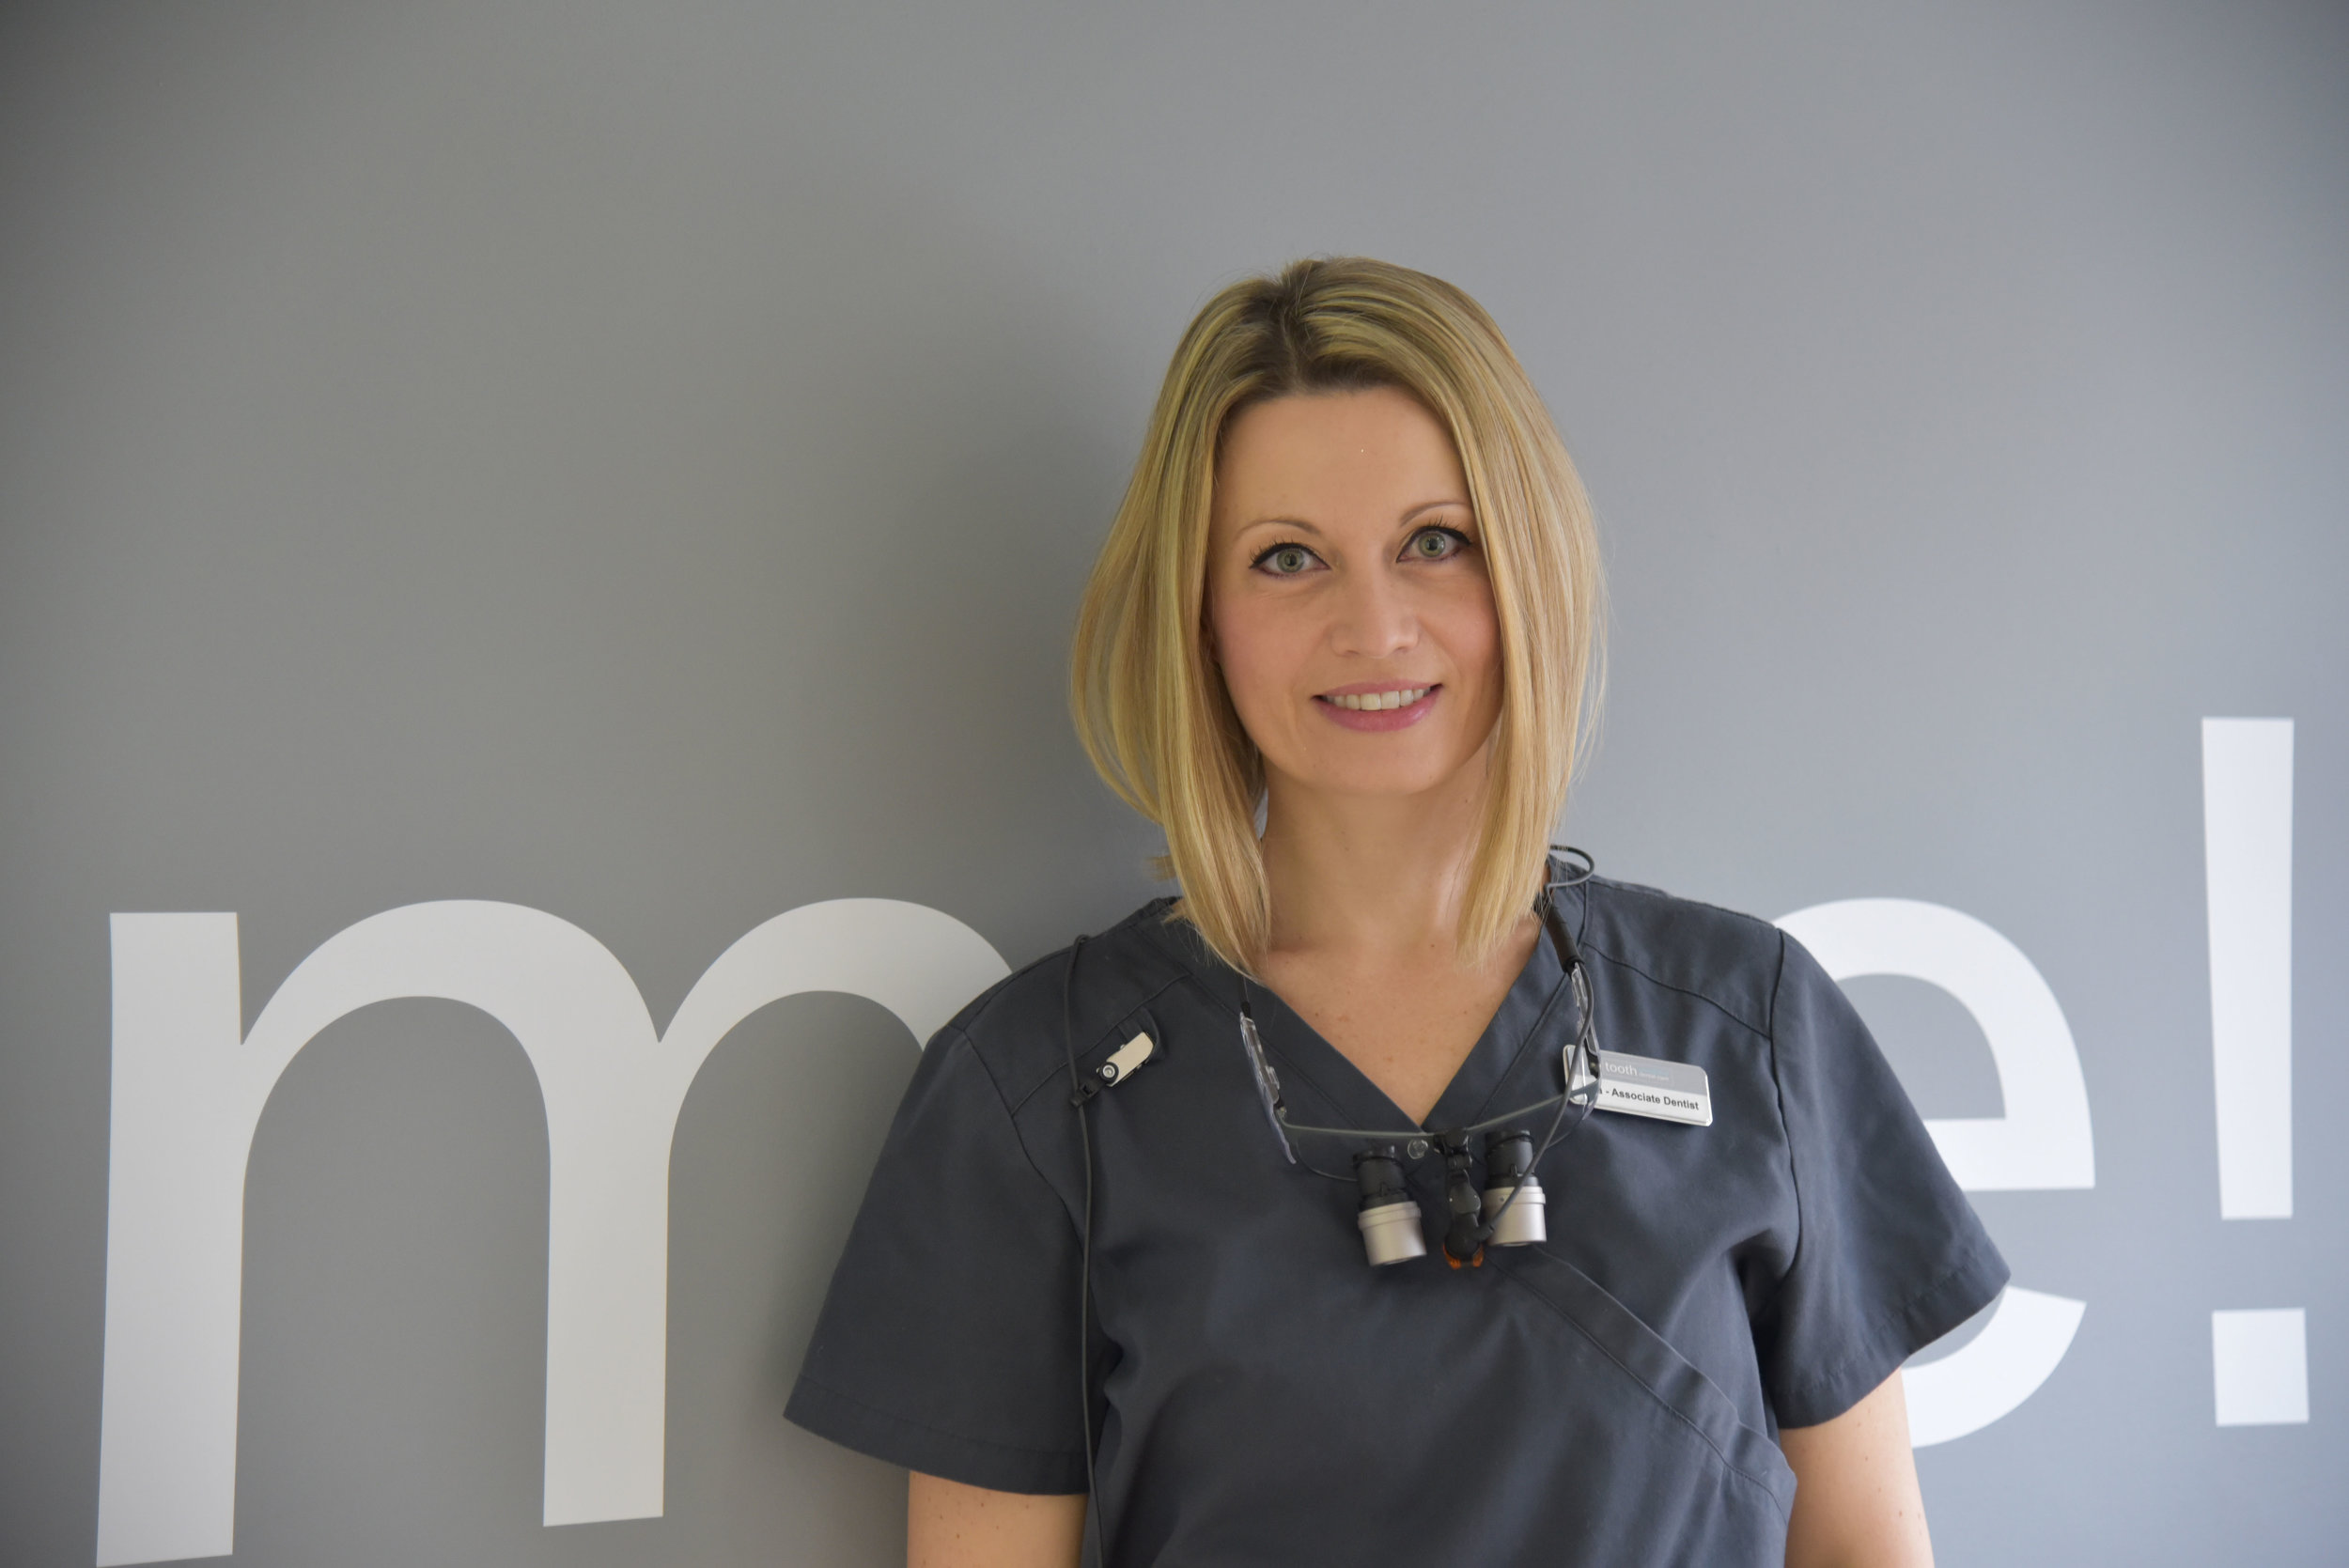 DR. ANA KRSTEVSKA, ASSOCIATE DENTIST, GDC No. 183883   DDM, Skopje; MFDS (RCSE) London; PG Diploma in Clinical Dental Science, Queen Mary's University London; PG Cert in Dental Implants, Bristol.  Dr. Ana is tooth's Associate Dentist with a special interest in Oral Surgery and Implants. She has a wealth of experience across leading private dental surgeries across London as well as extensive hospital experience. Ana also works as a Specialty Doctor in Oral Surgery and as an Honorary Clinical Teacher at King's College Hospital in London. In addition, Dr. Ana is a member of the BAOS (British Association of Oral Surgeons), ITI (International Training in Dental Implants), EAO (European Association of Osseointegration) and ESCD (European Society of Cosmetic Dentistry).